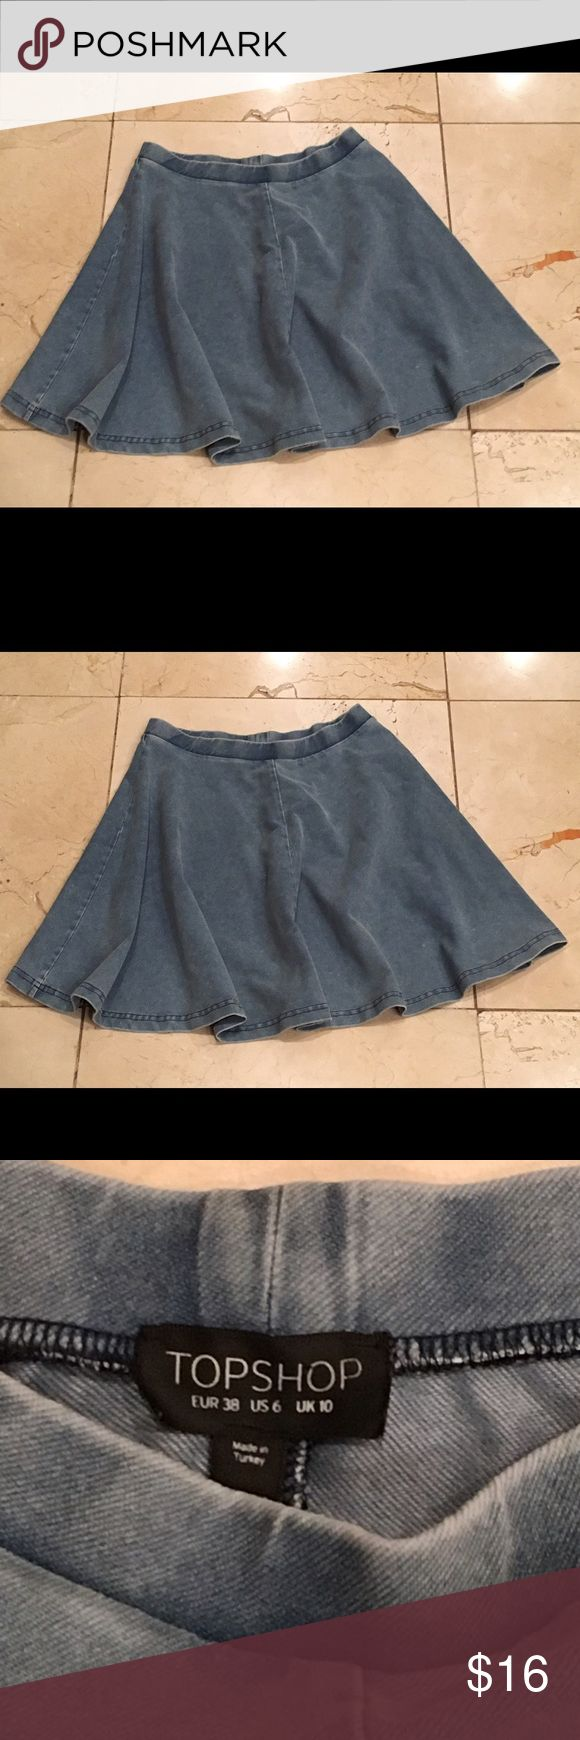 "Topshop Women's Blue Denim Skater Skirt. Size 6. Topshop Women's Blue Denim Skater Skirt. Size 6. Color Washed Blue. Approximate Measurements Flat. Waist 13"" Length 18"" Excellent Preowned Condition. Topshop Skirts Circle & Skater"